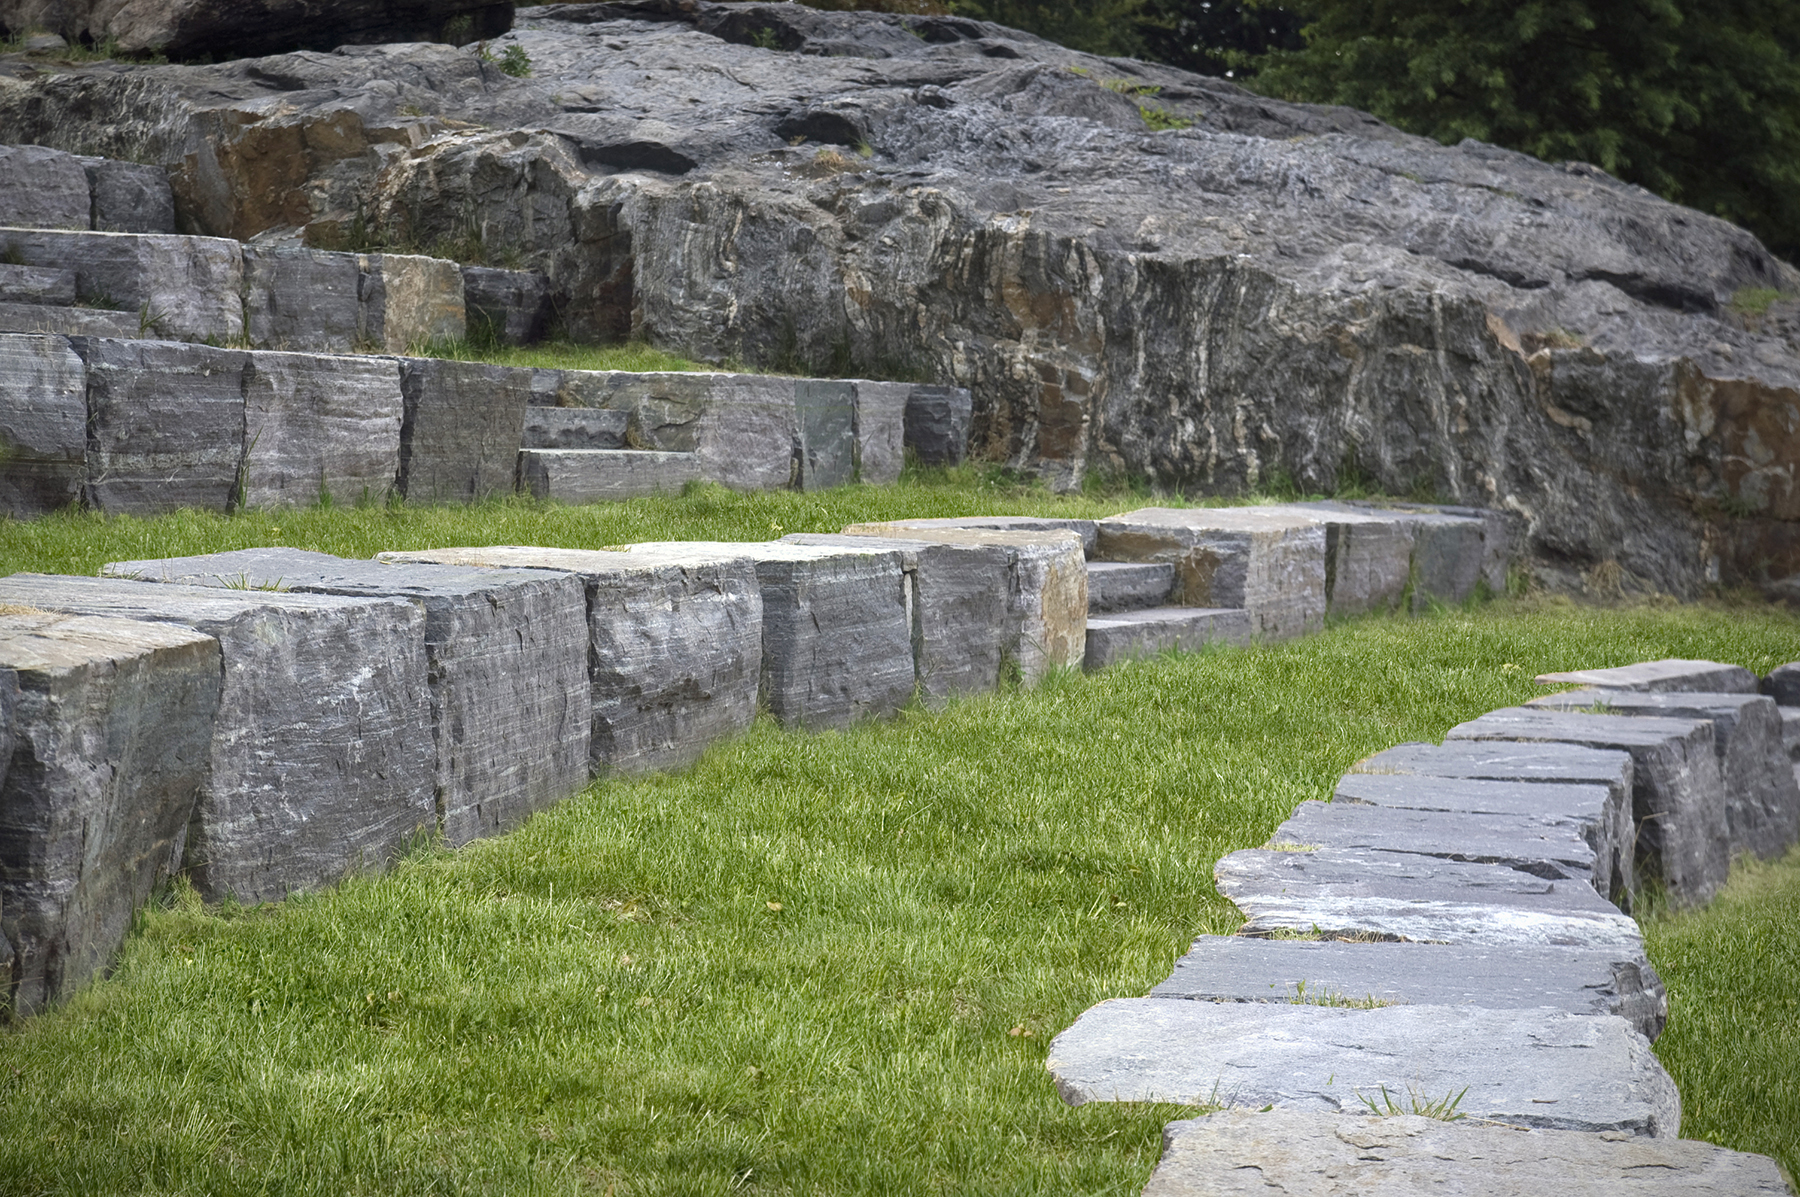 Stone seating in small amphitheater